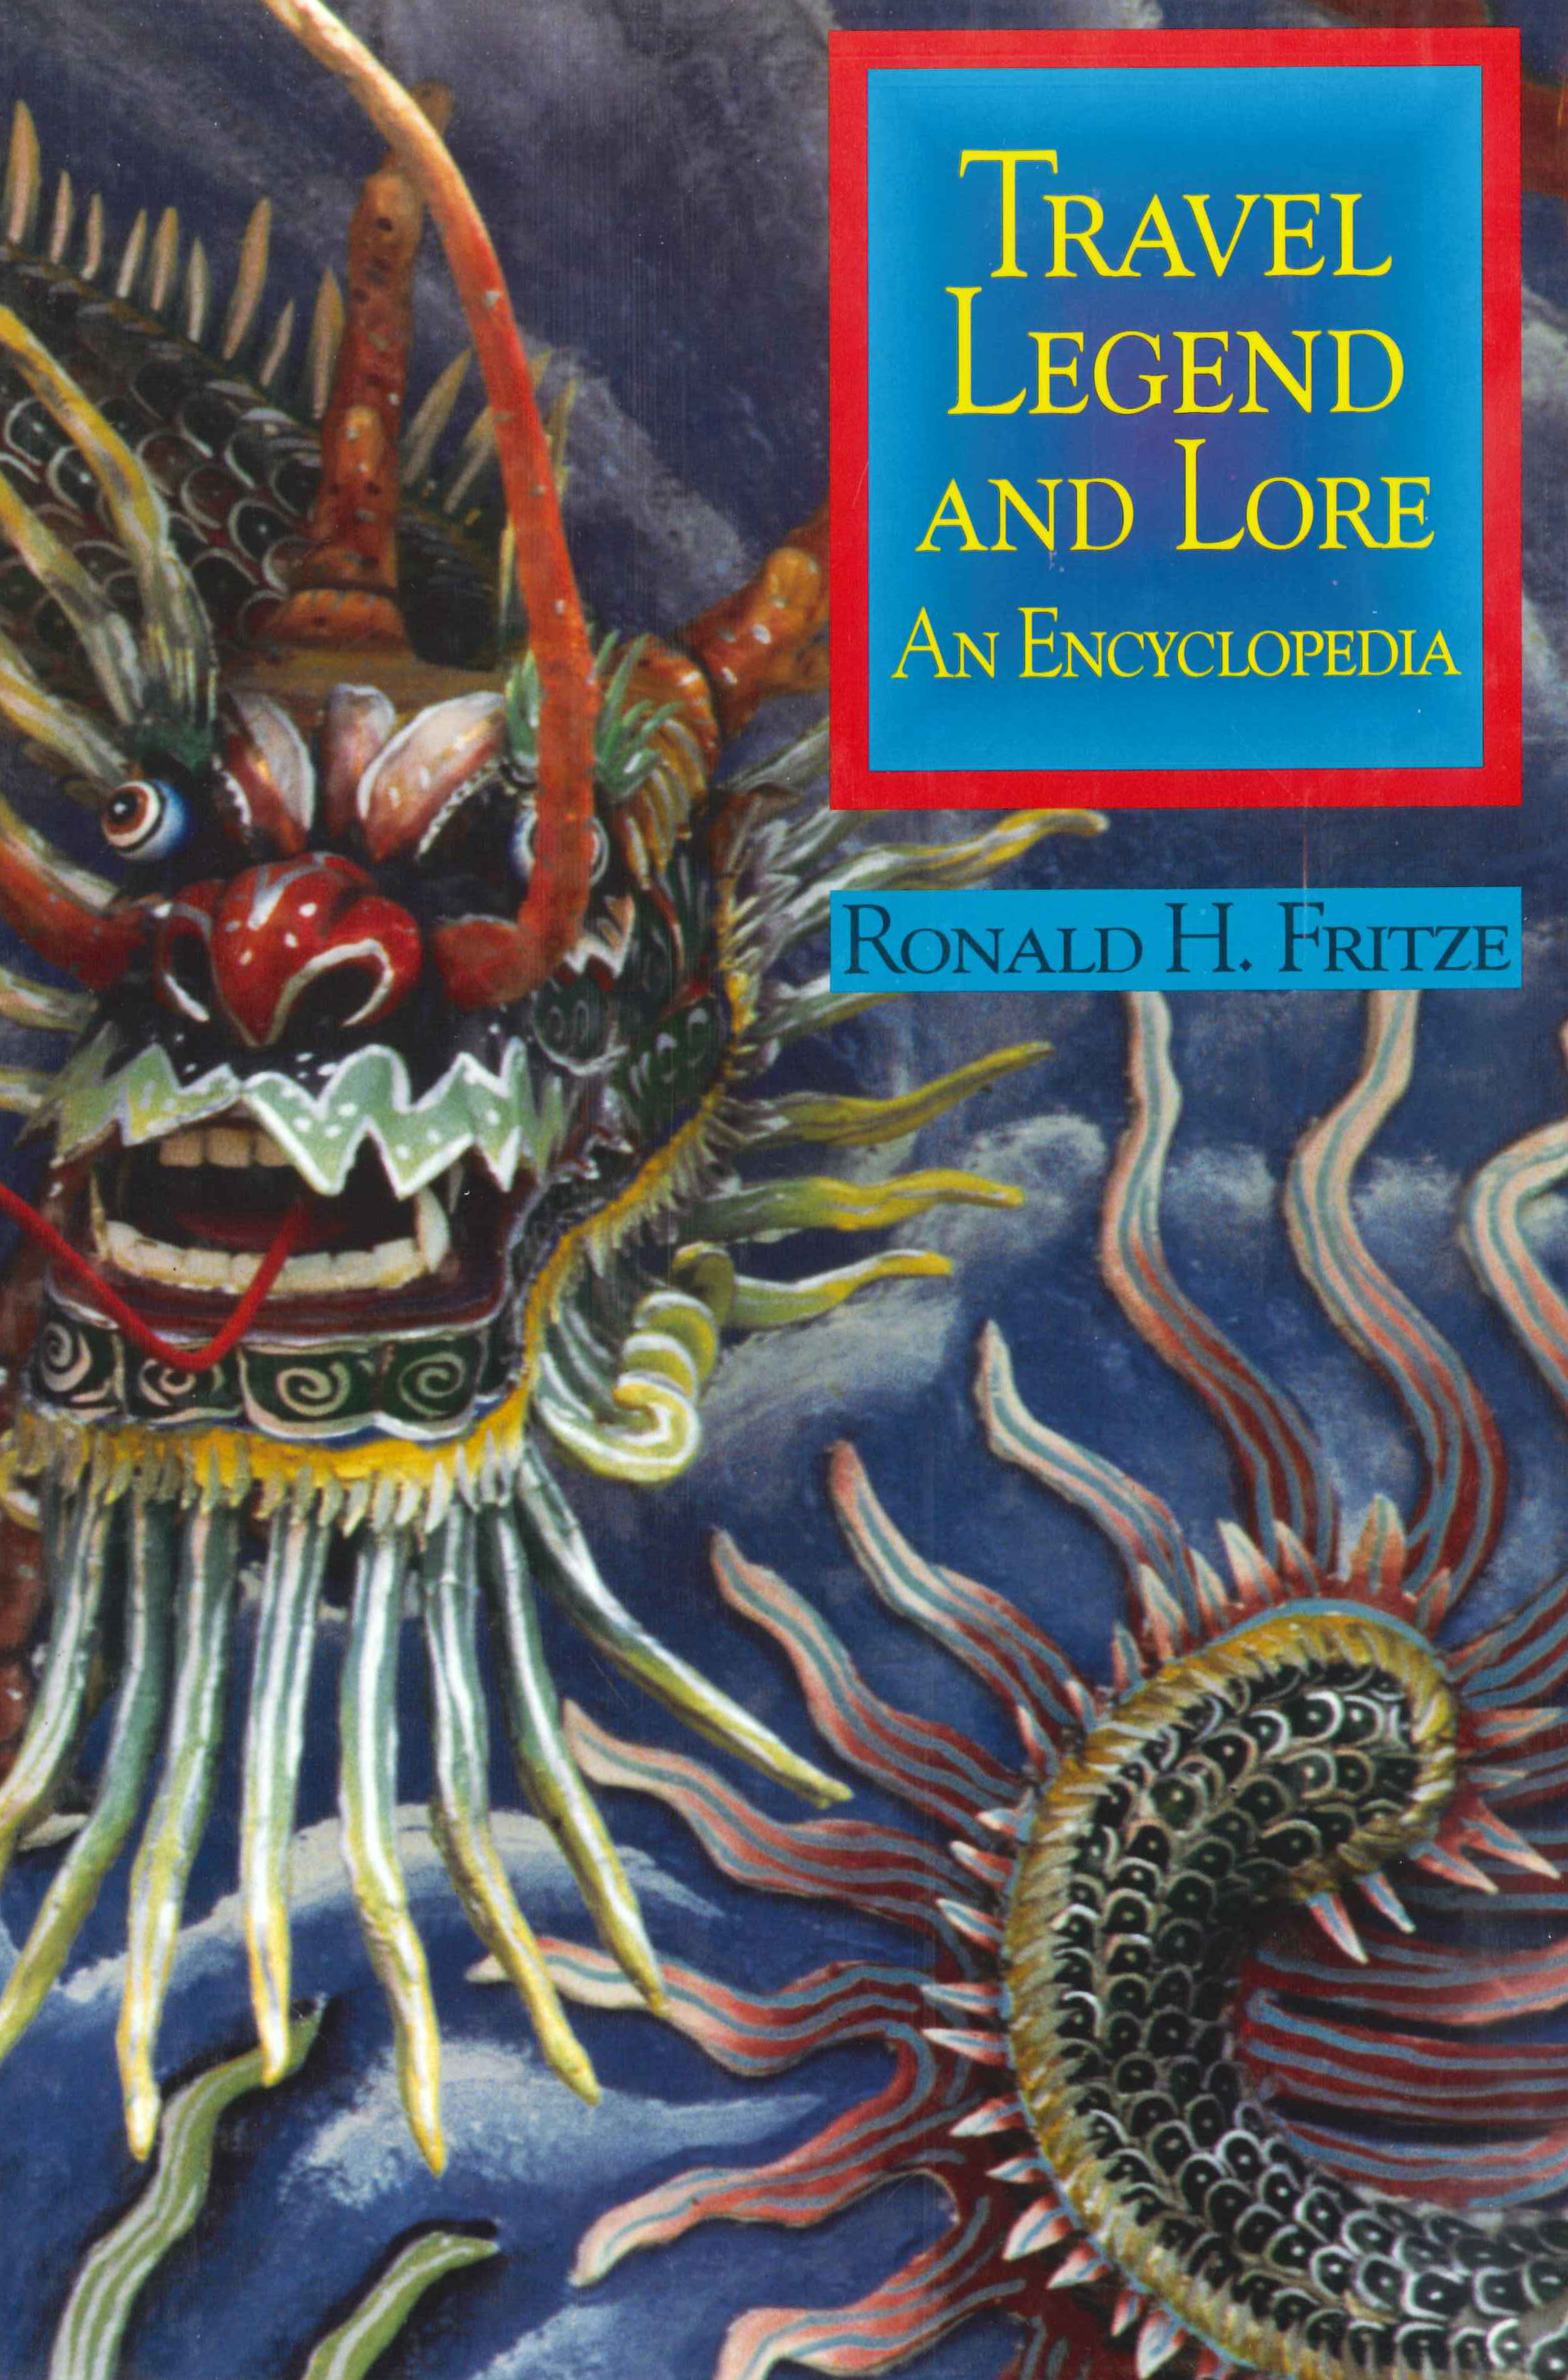 Travel, Legend, and Lore: An Encyclopedia by Ronald Fritze